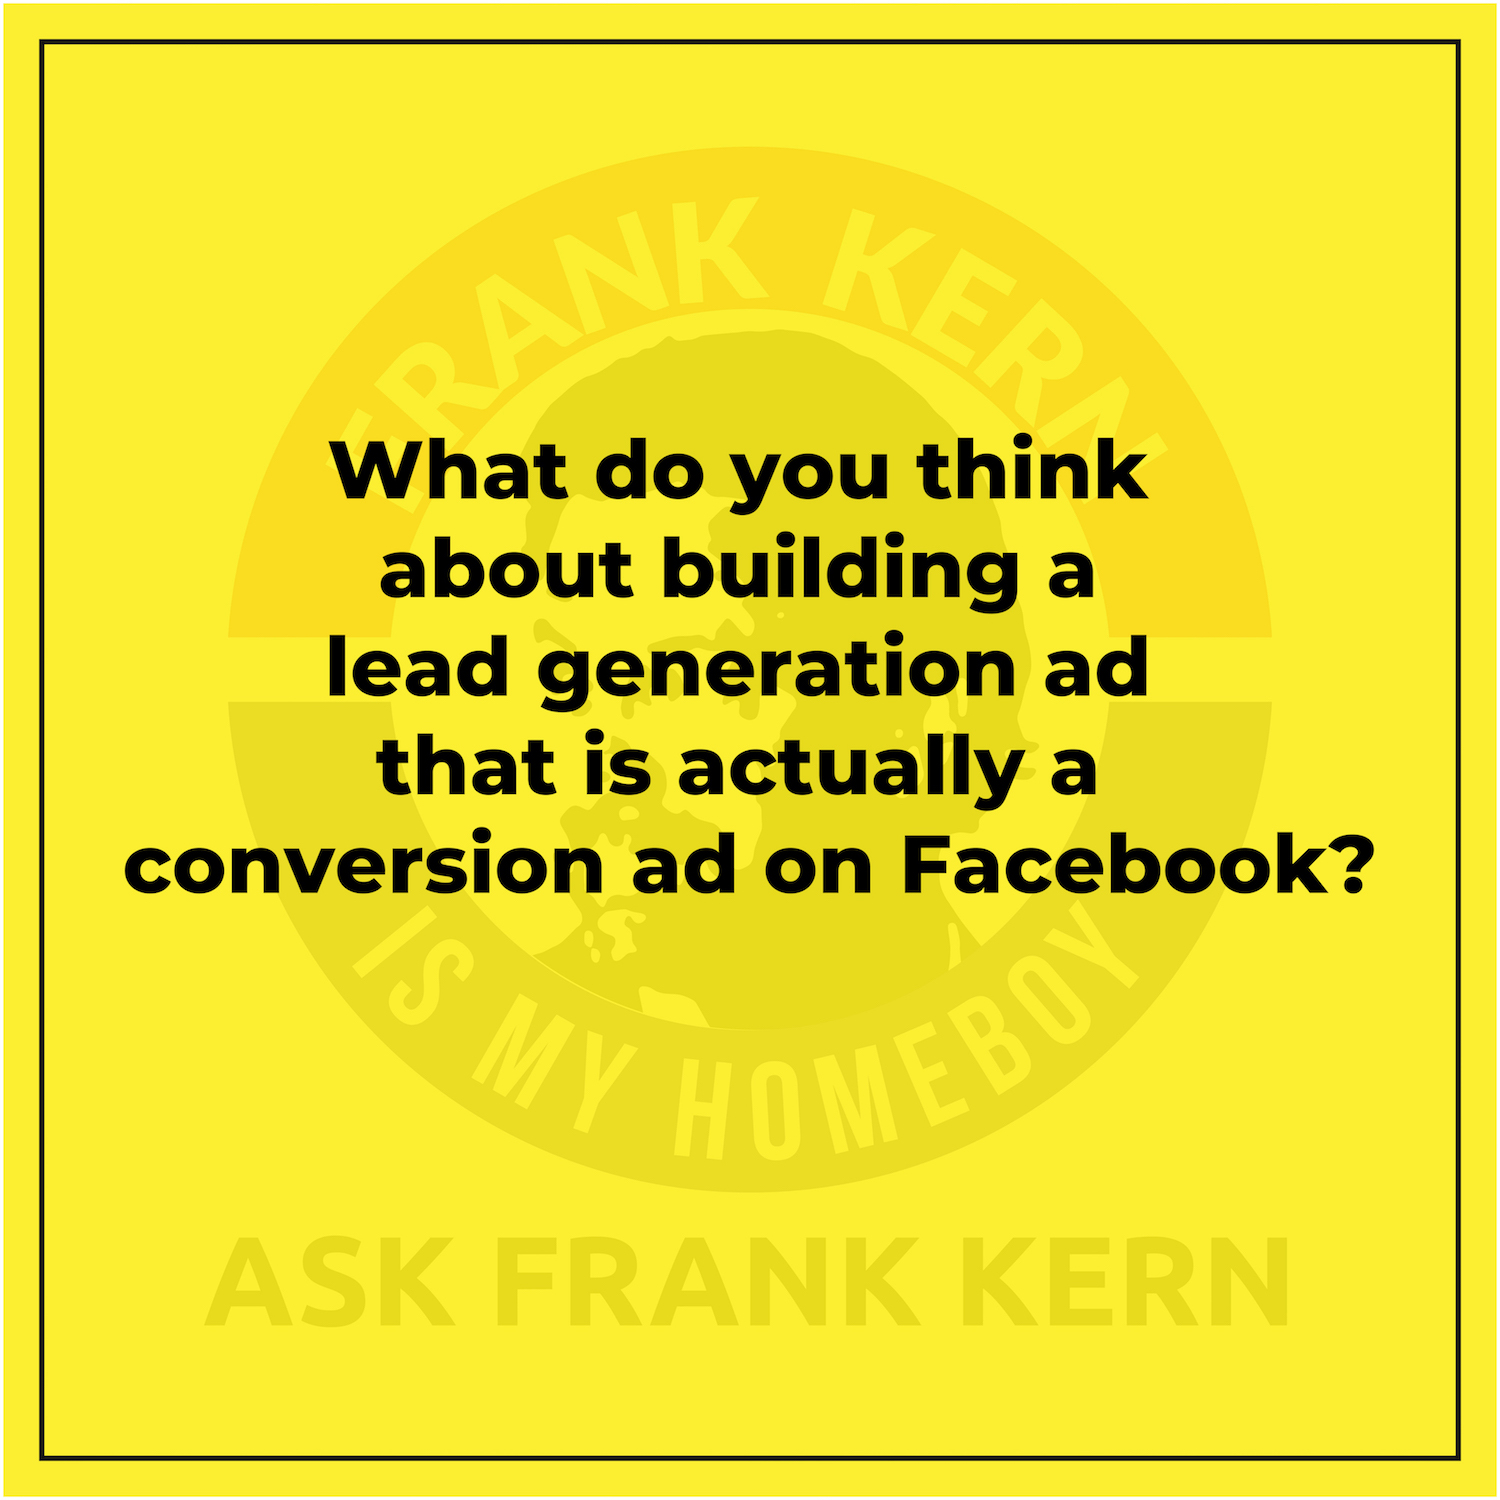 What do you think about building a lead generation ad that is actually a conversion ad on Facebook?